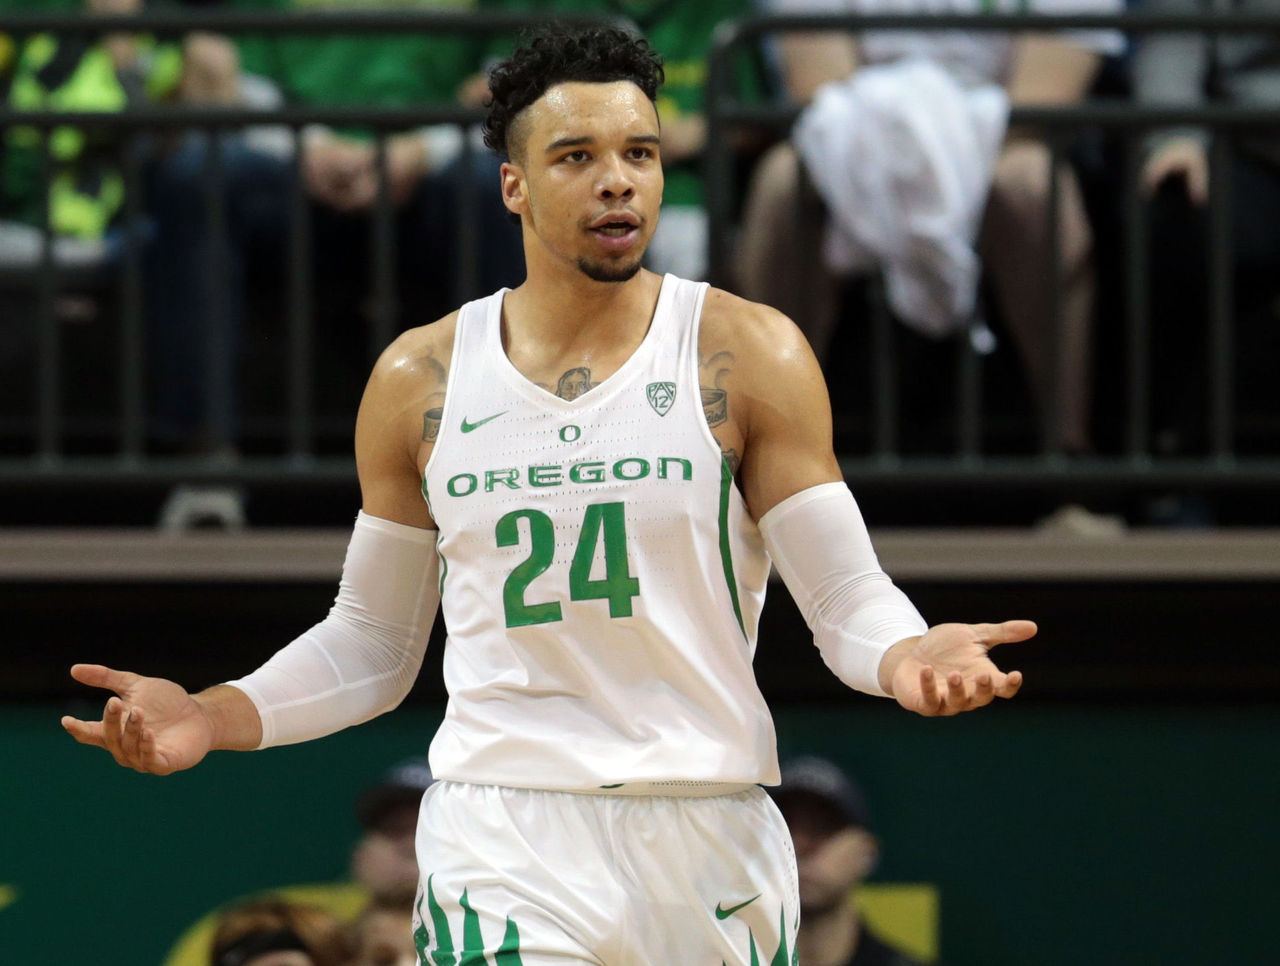 Cropped 2016 12 21t043117z 588372799 nocid rtrmadp 3 ncaa basketball fresno state at oregon